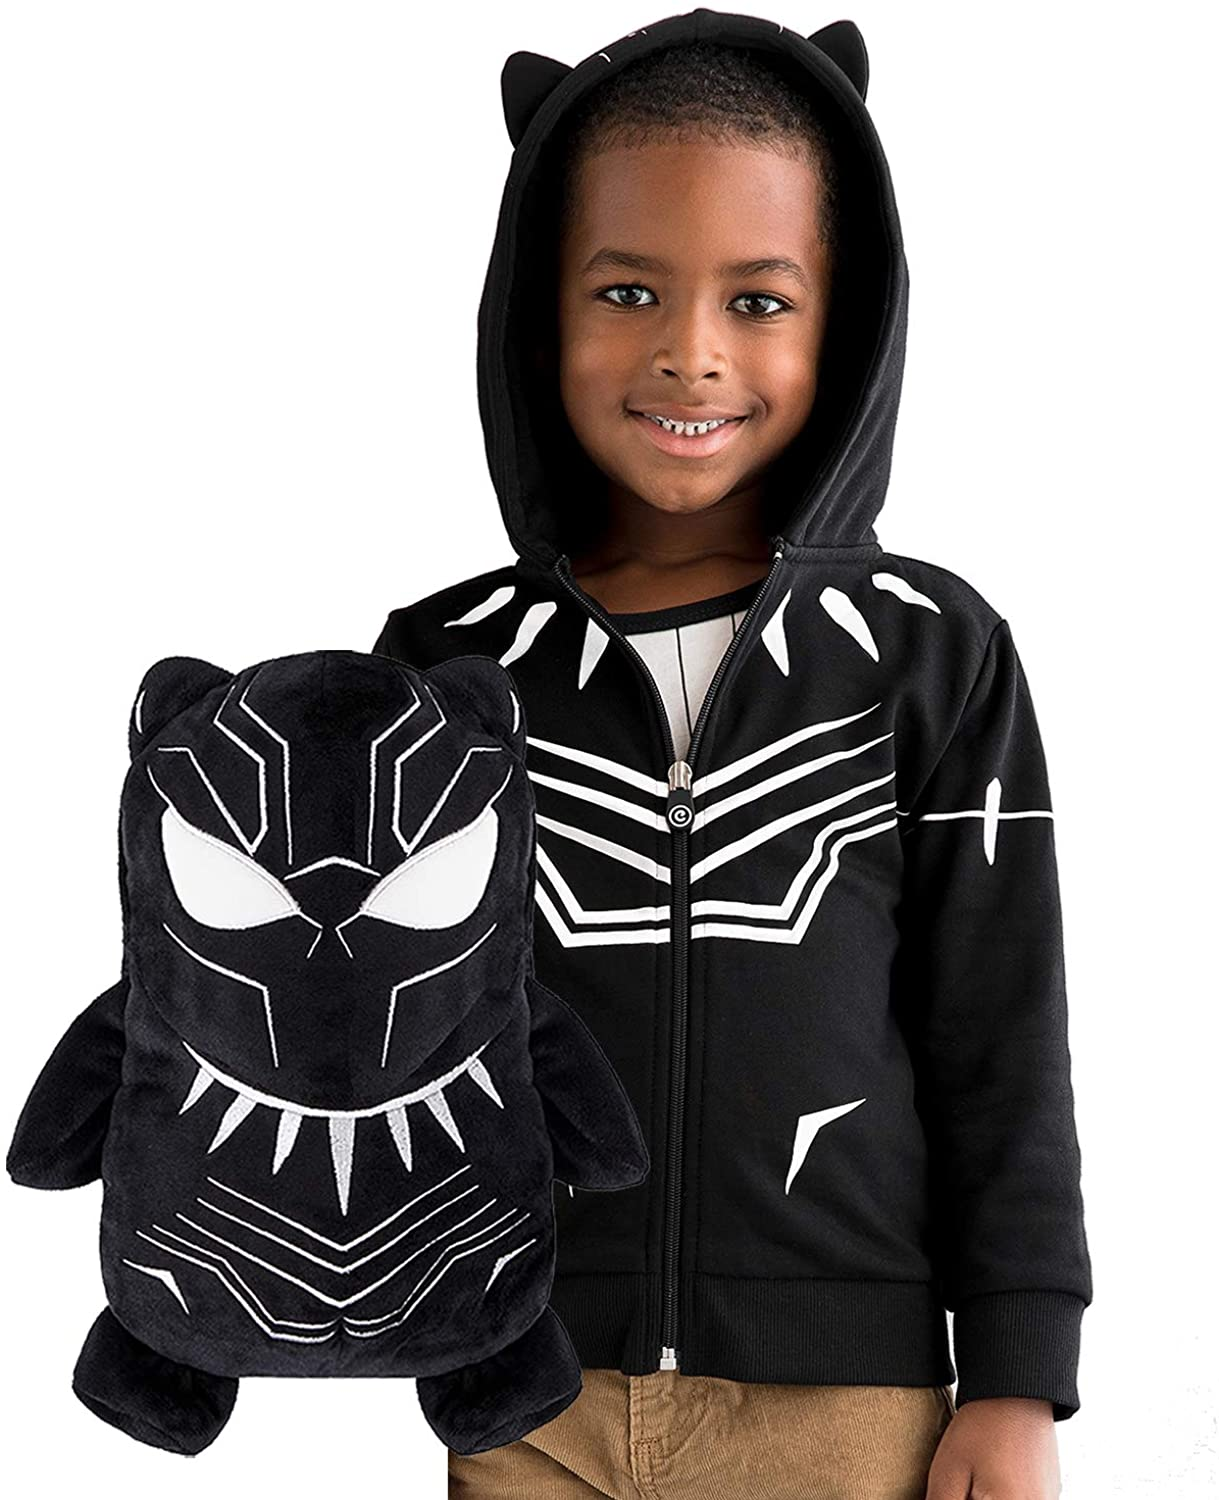 Black Panther Hoodie and Soft Plushie For Kids